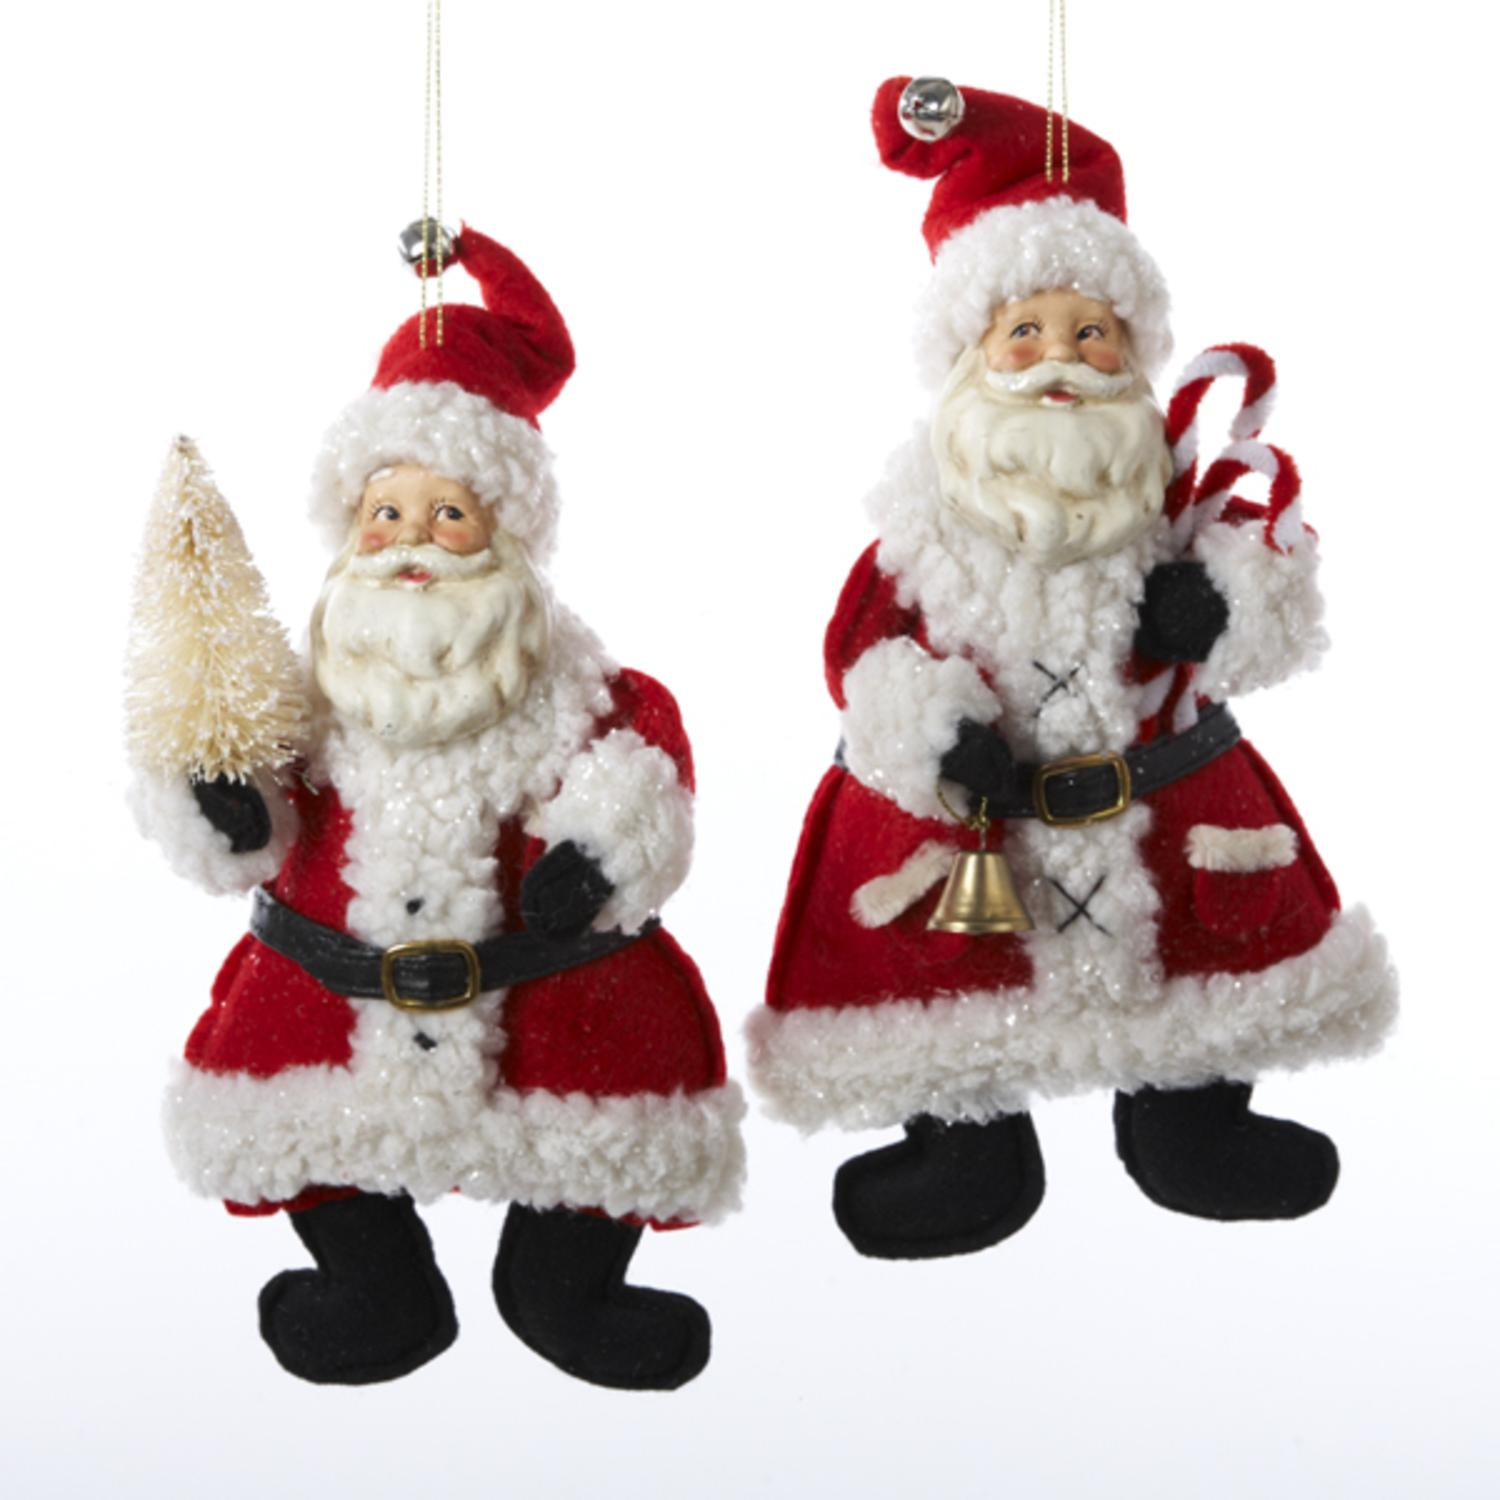 6 Santa Claus Classics Holding a Bell or Tree Christmas Figure Ornaments 9""